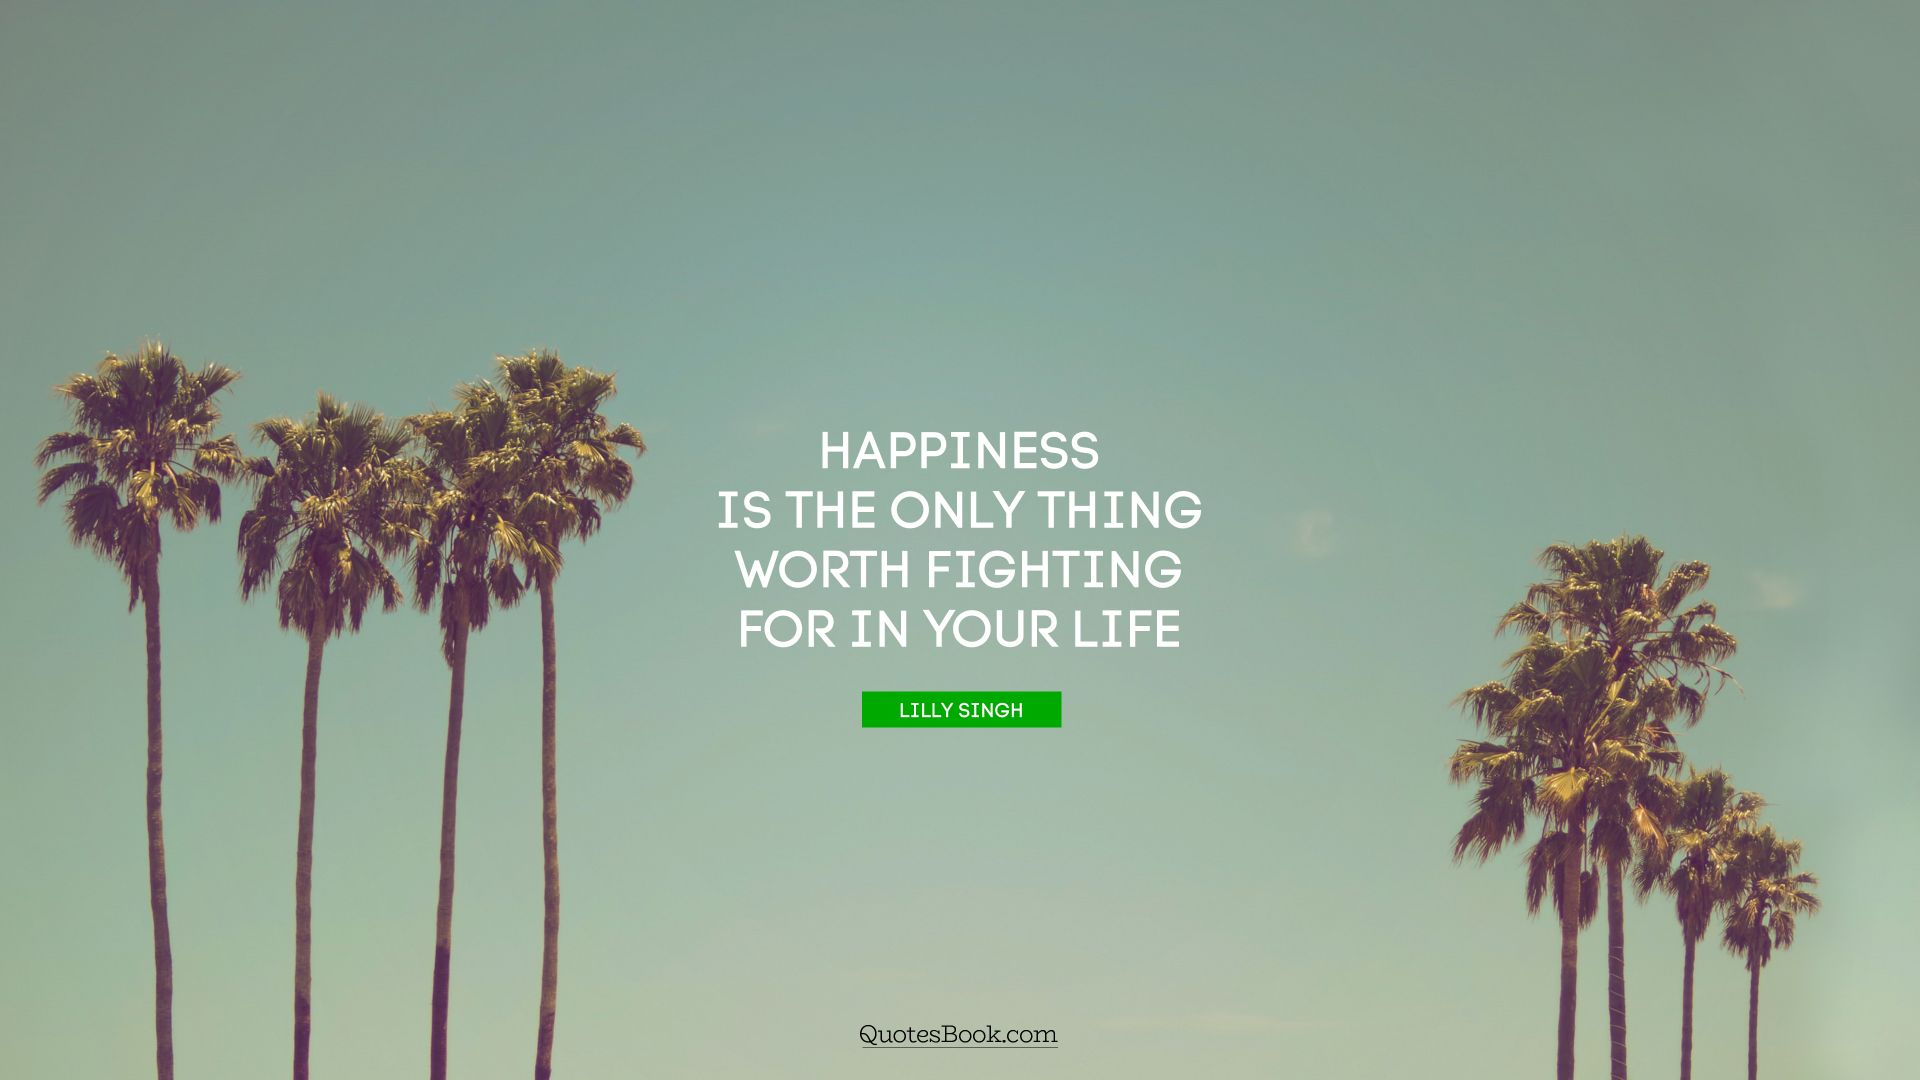 Happiness is the only thing worth fighting for in your life. - Quote by Lilly Singh